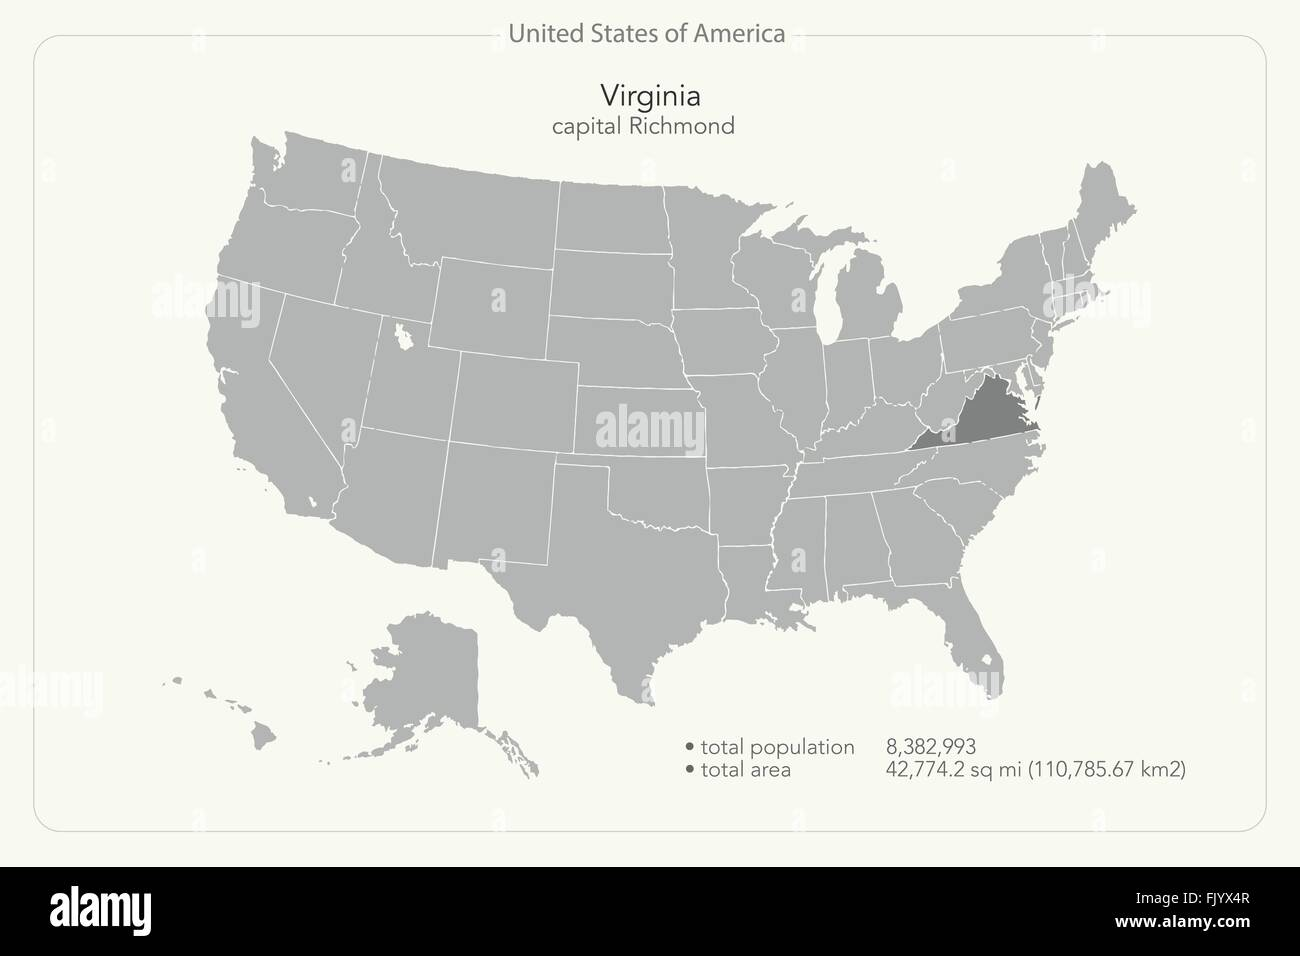 United States Of America Isolated Map And Virginia State Territory - Us map virginia